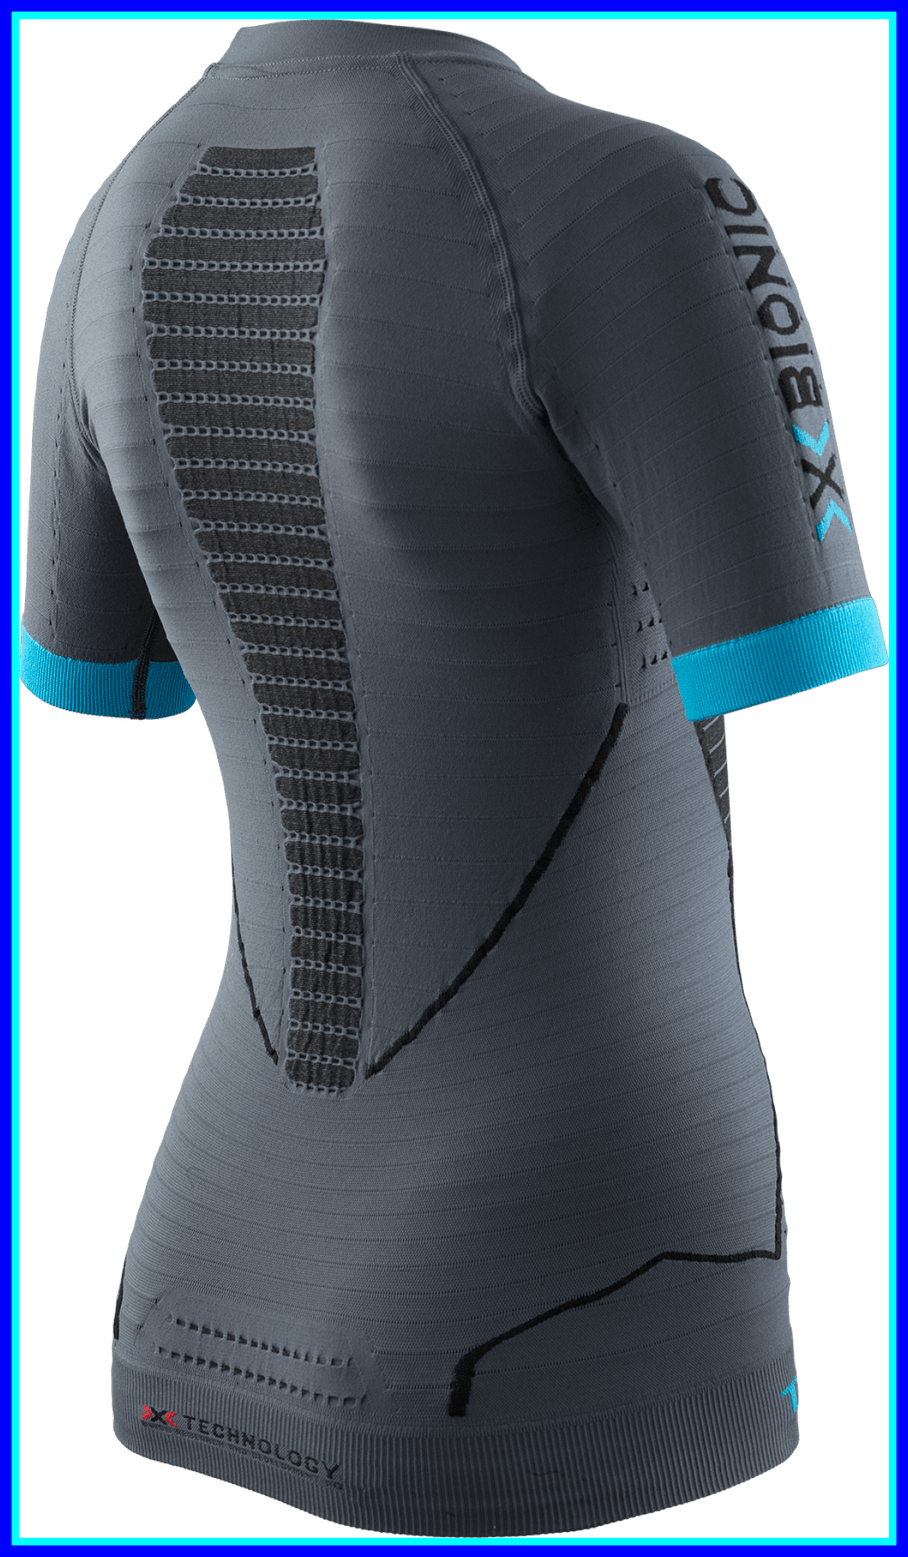 Hoodie clipart sweatsuit. Fascinating ccr technology bionic